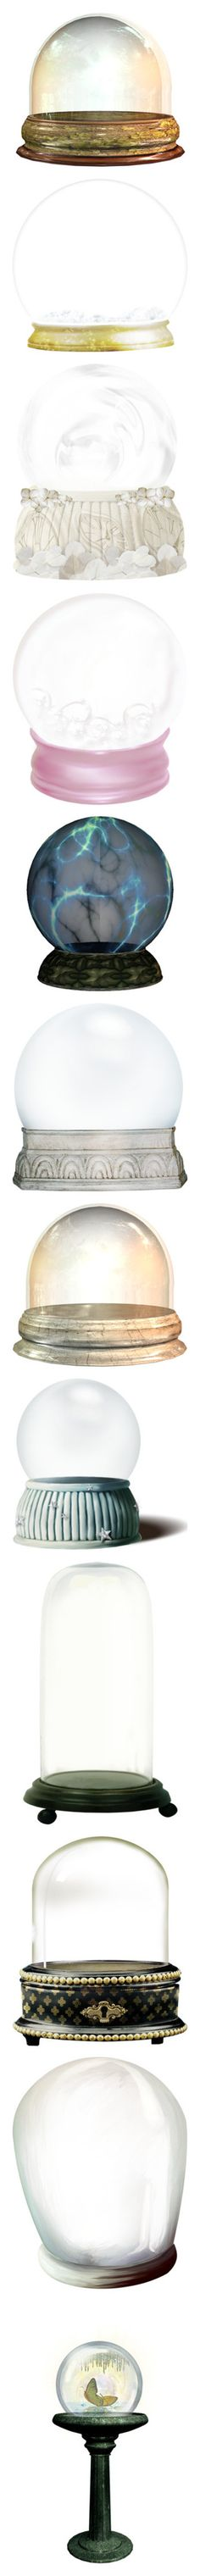 Christmas Ornaments Snow Globes My Polyvore Finds